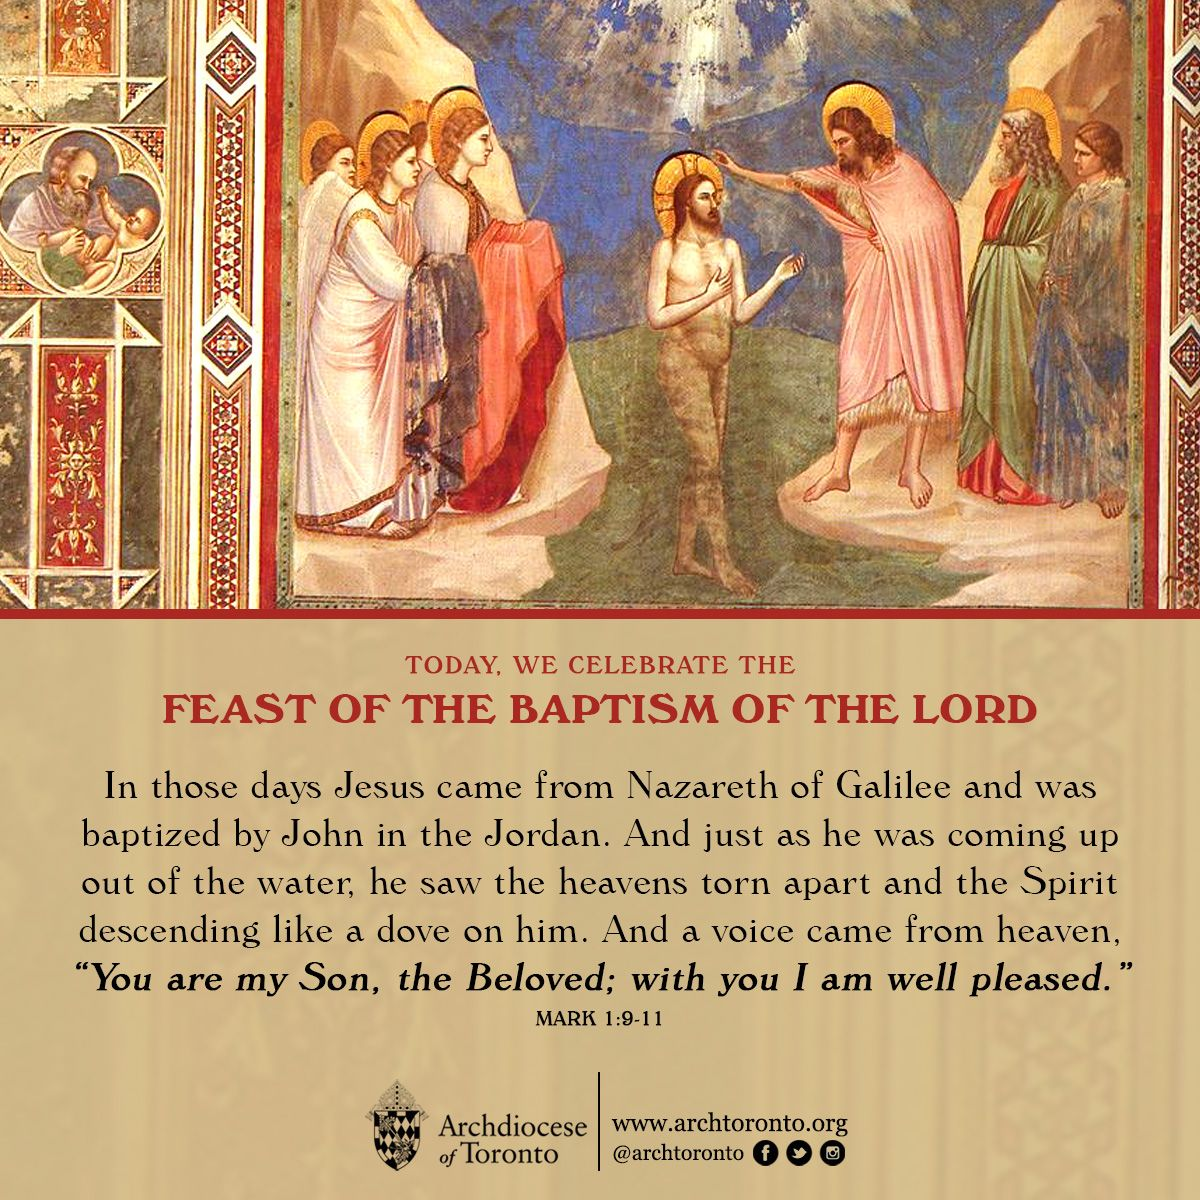 Bible Quotes About St John The Baptist: Feast Of The Baptism Of The Lord #catholic #jesus #baptism